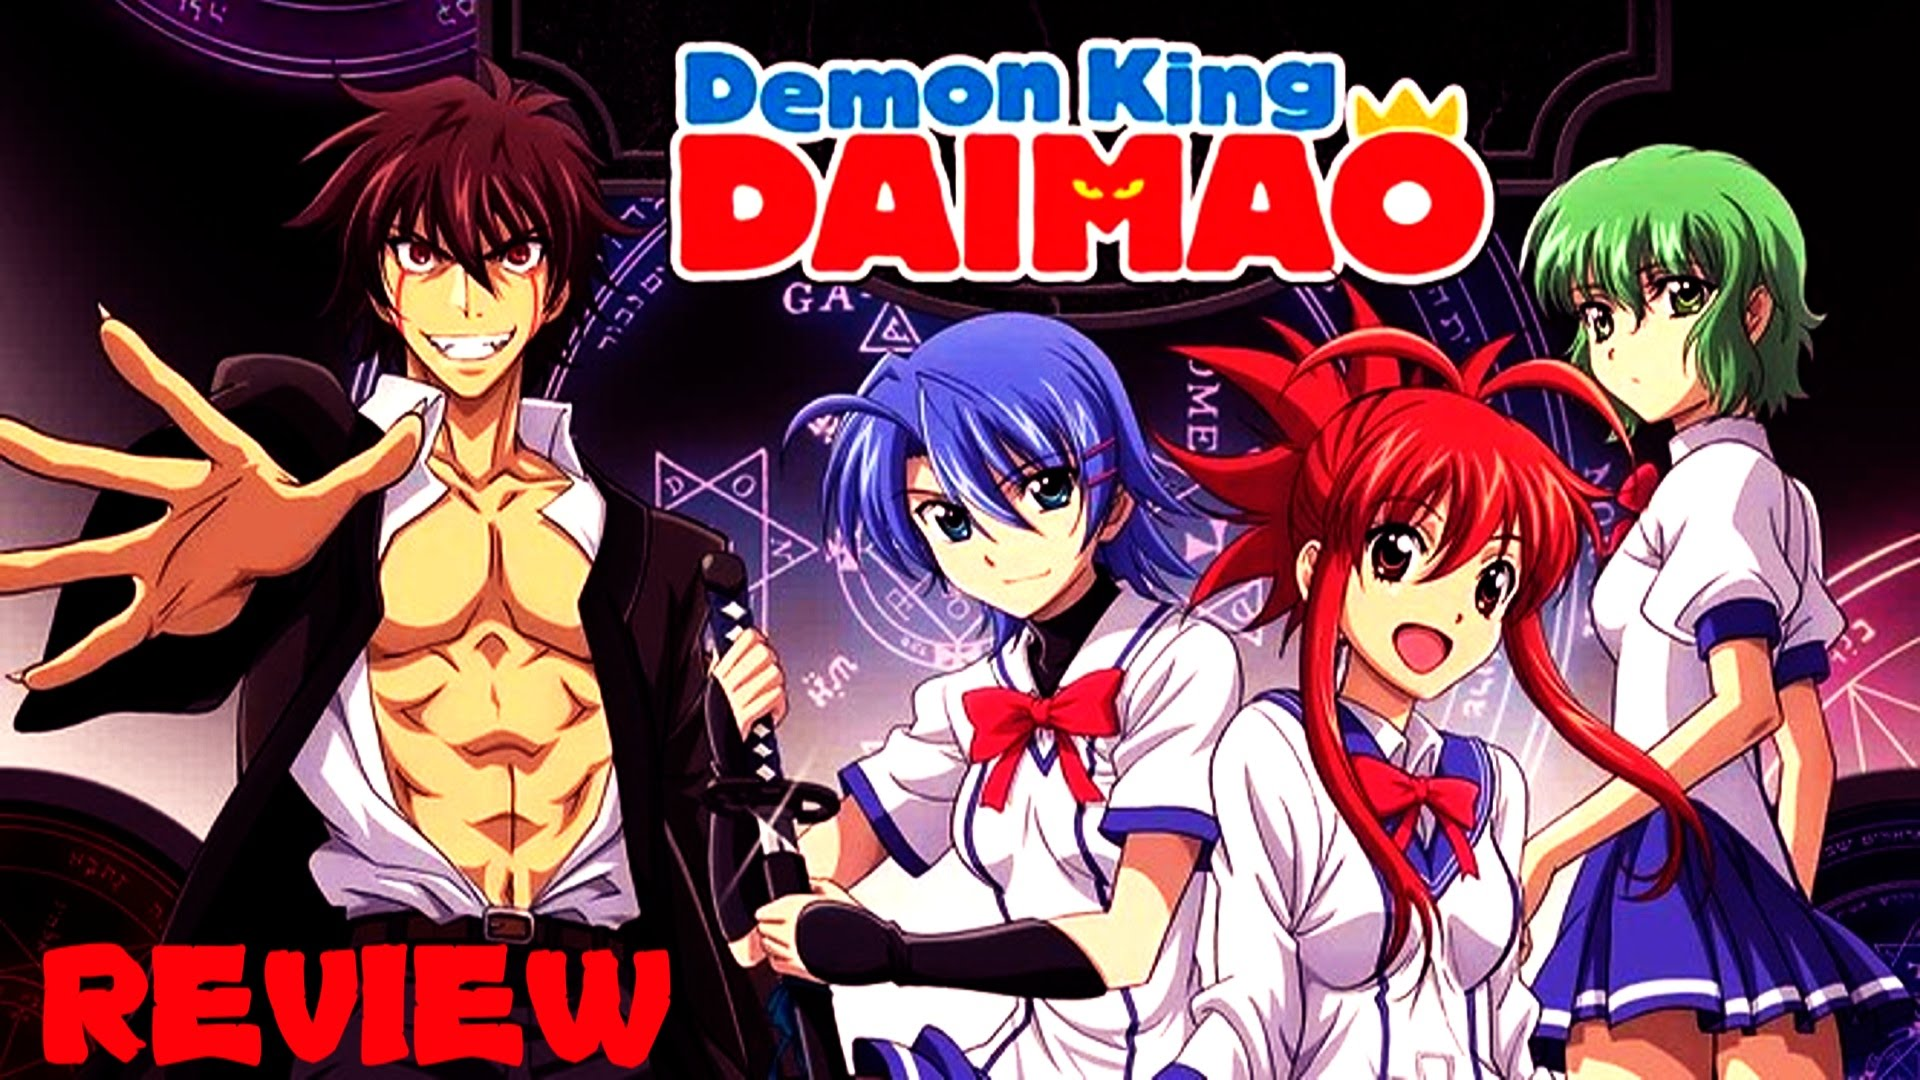 Demon king daimao henti nudes picture